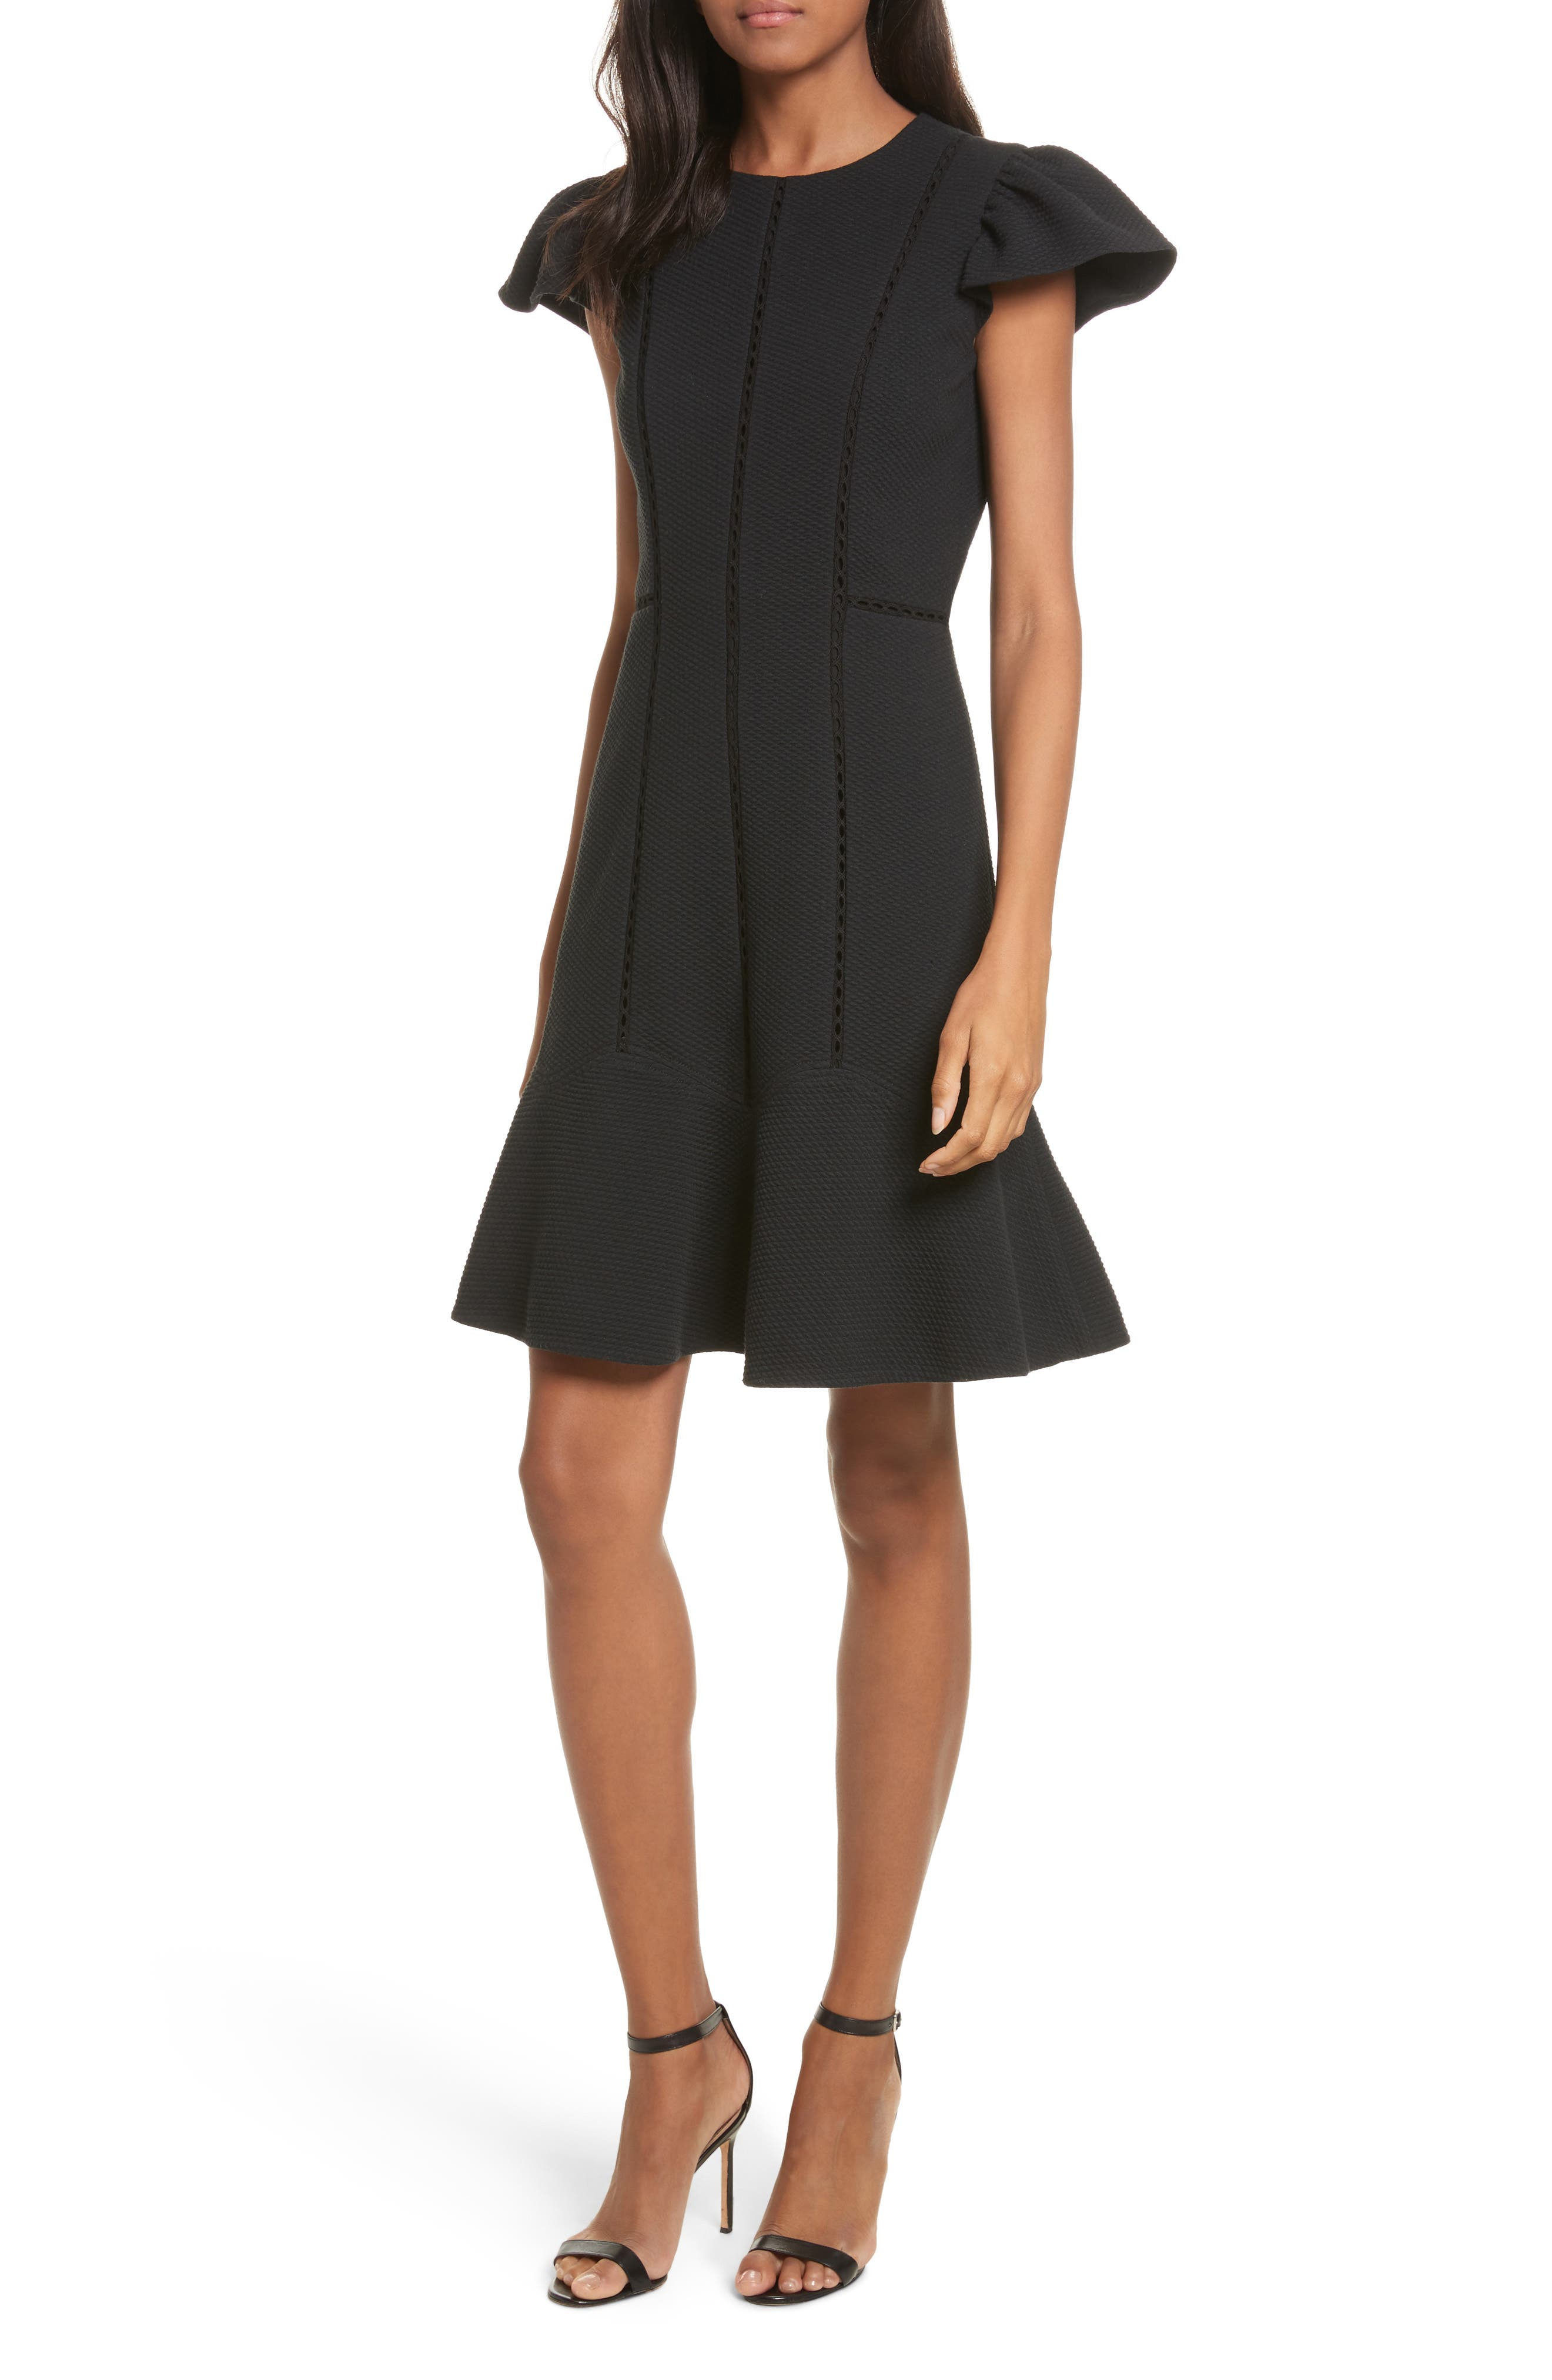 Alternate Image 1 Selected - Rebecca Taylor Textured Stretch Fit & Flare Dress